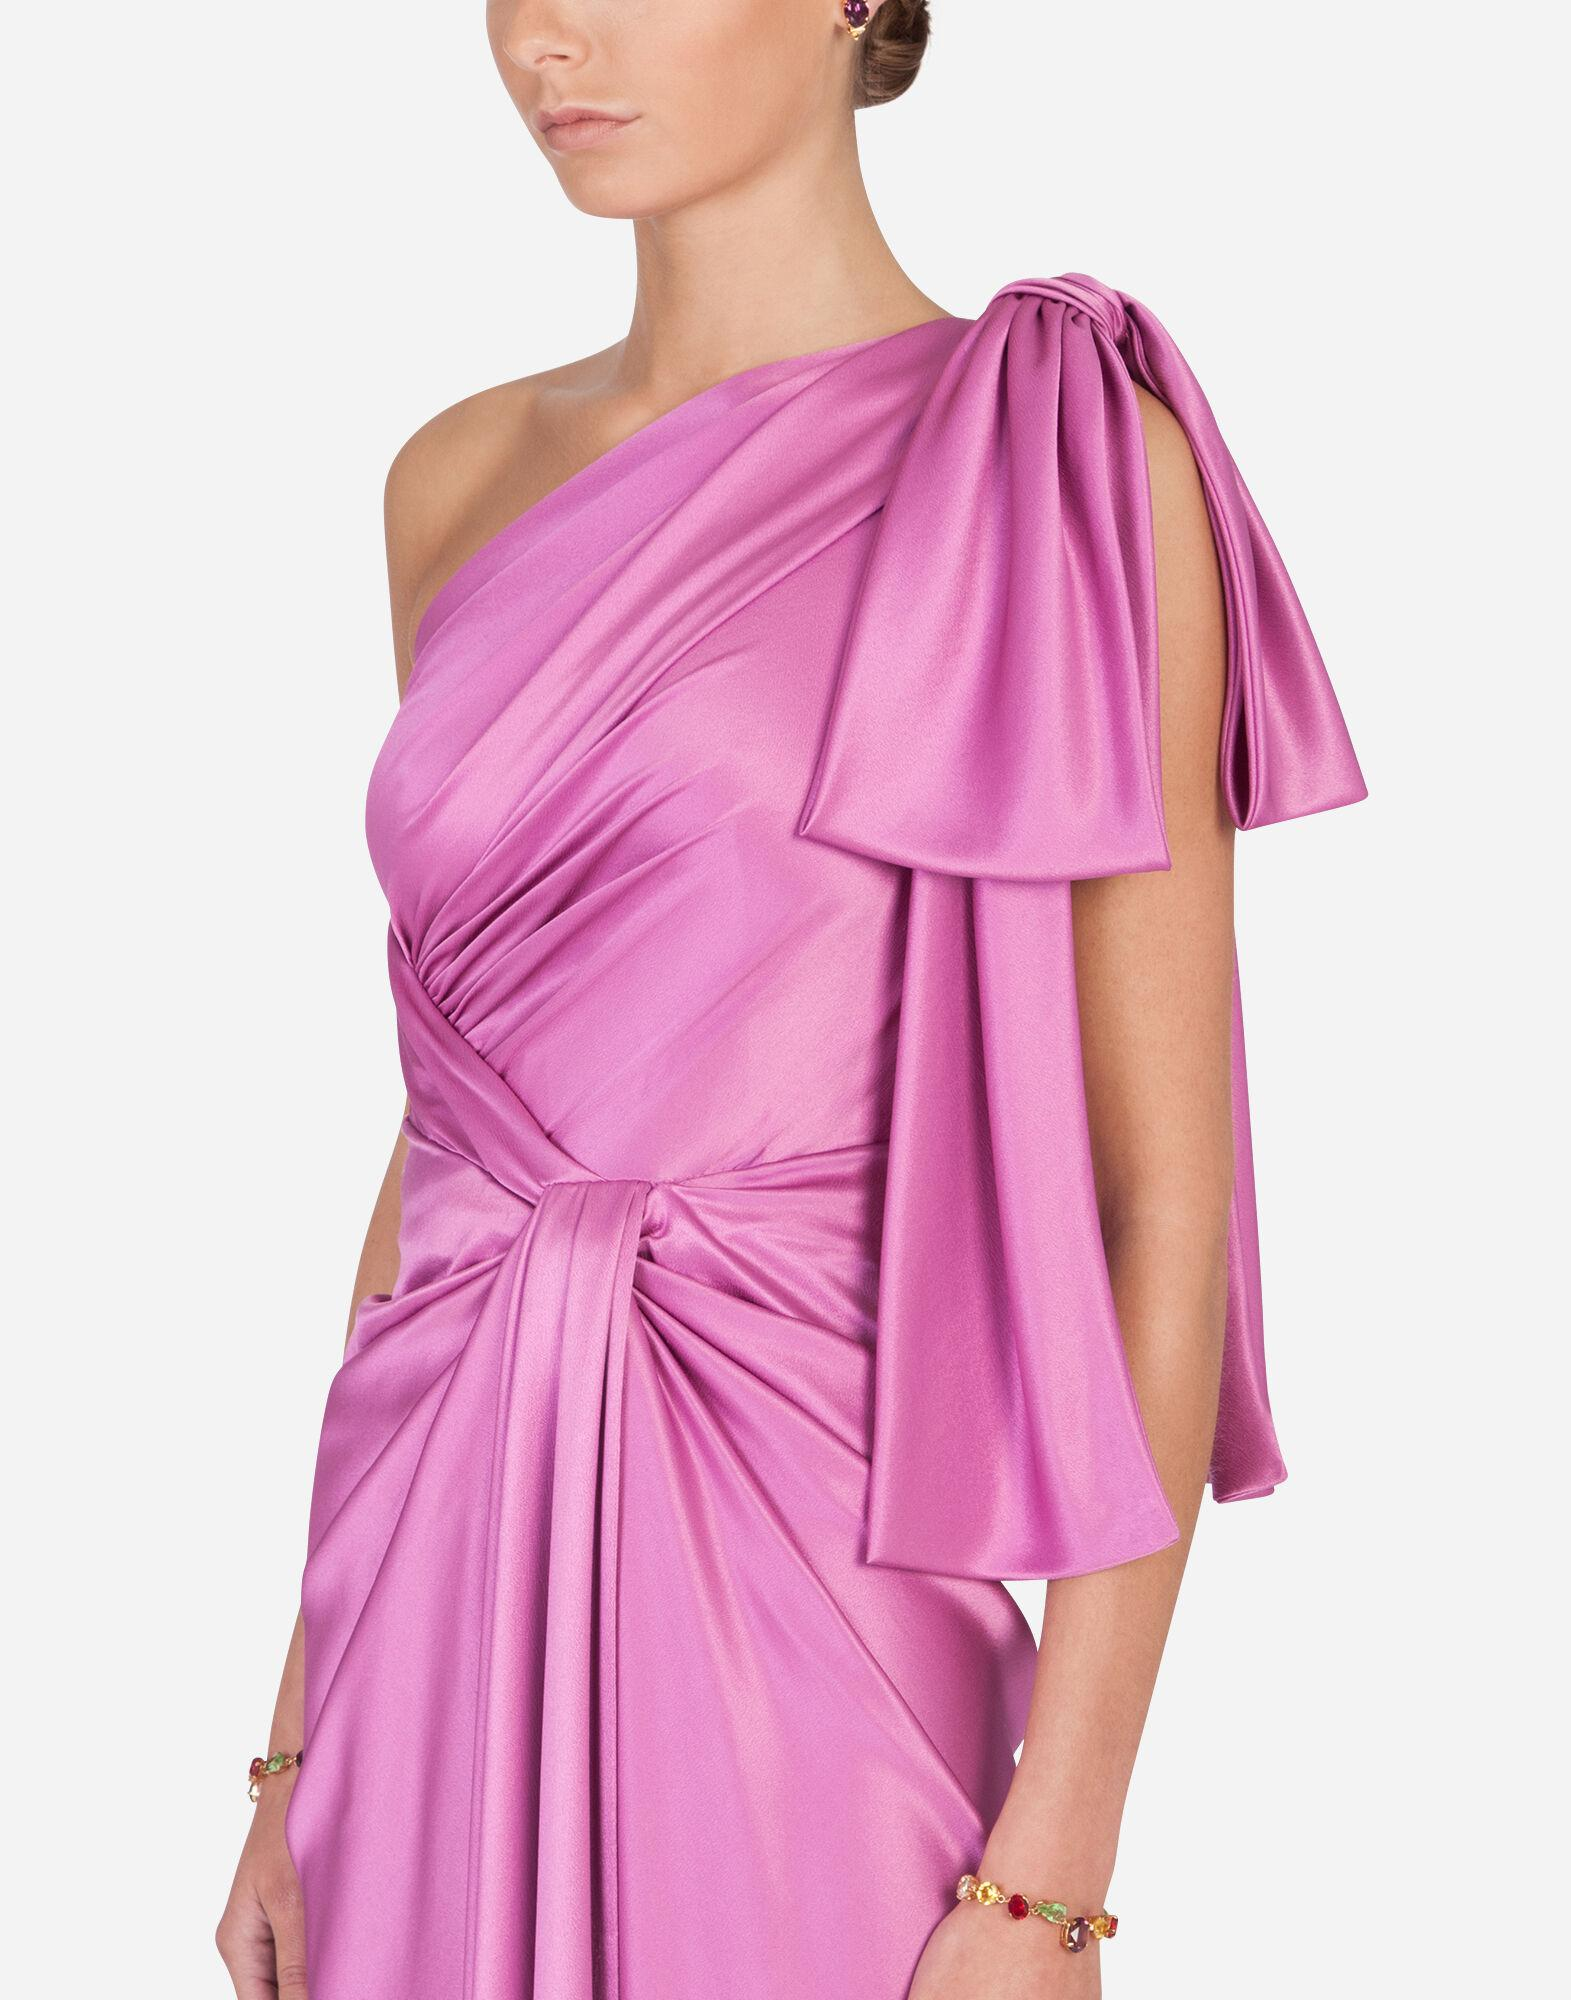 Long one-shoulder silk dress with bow detail 3